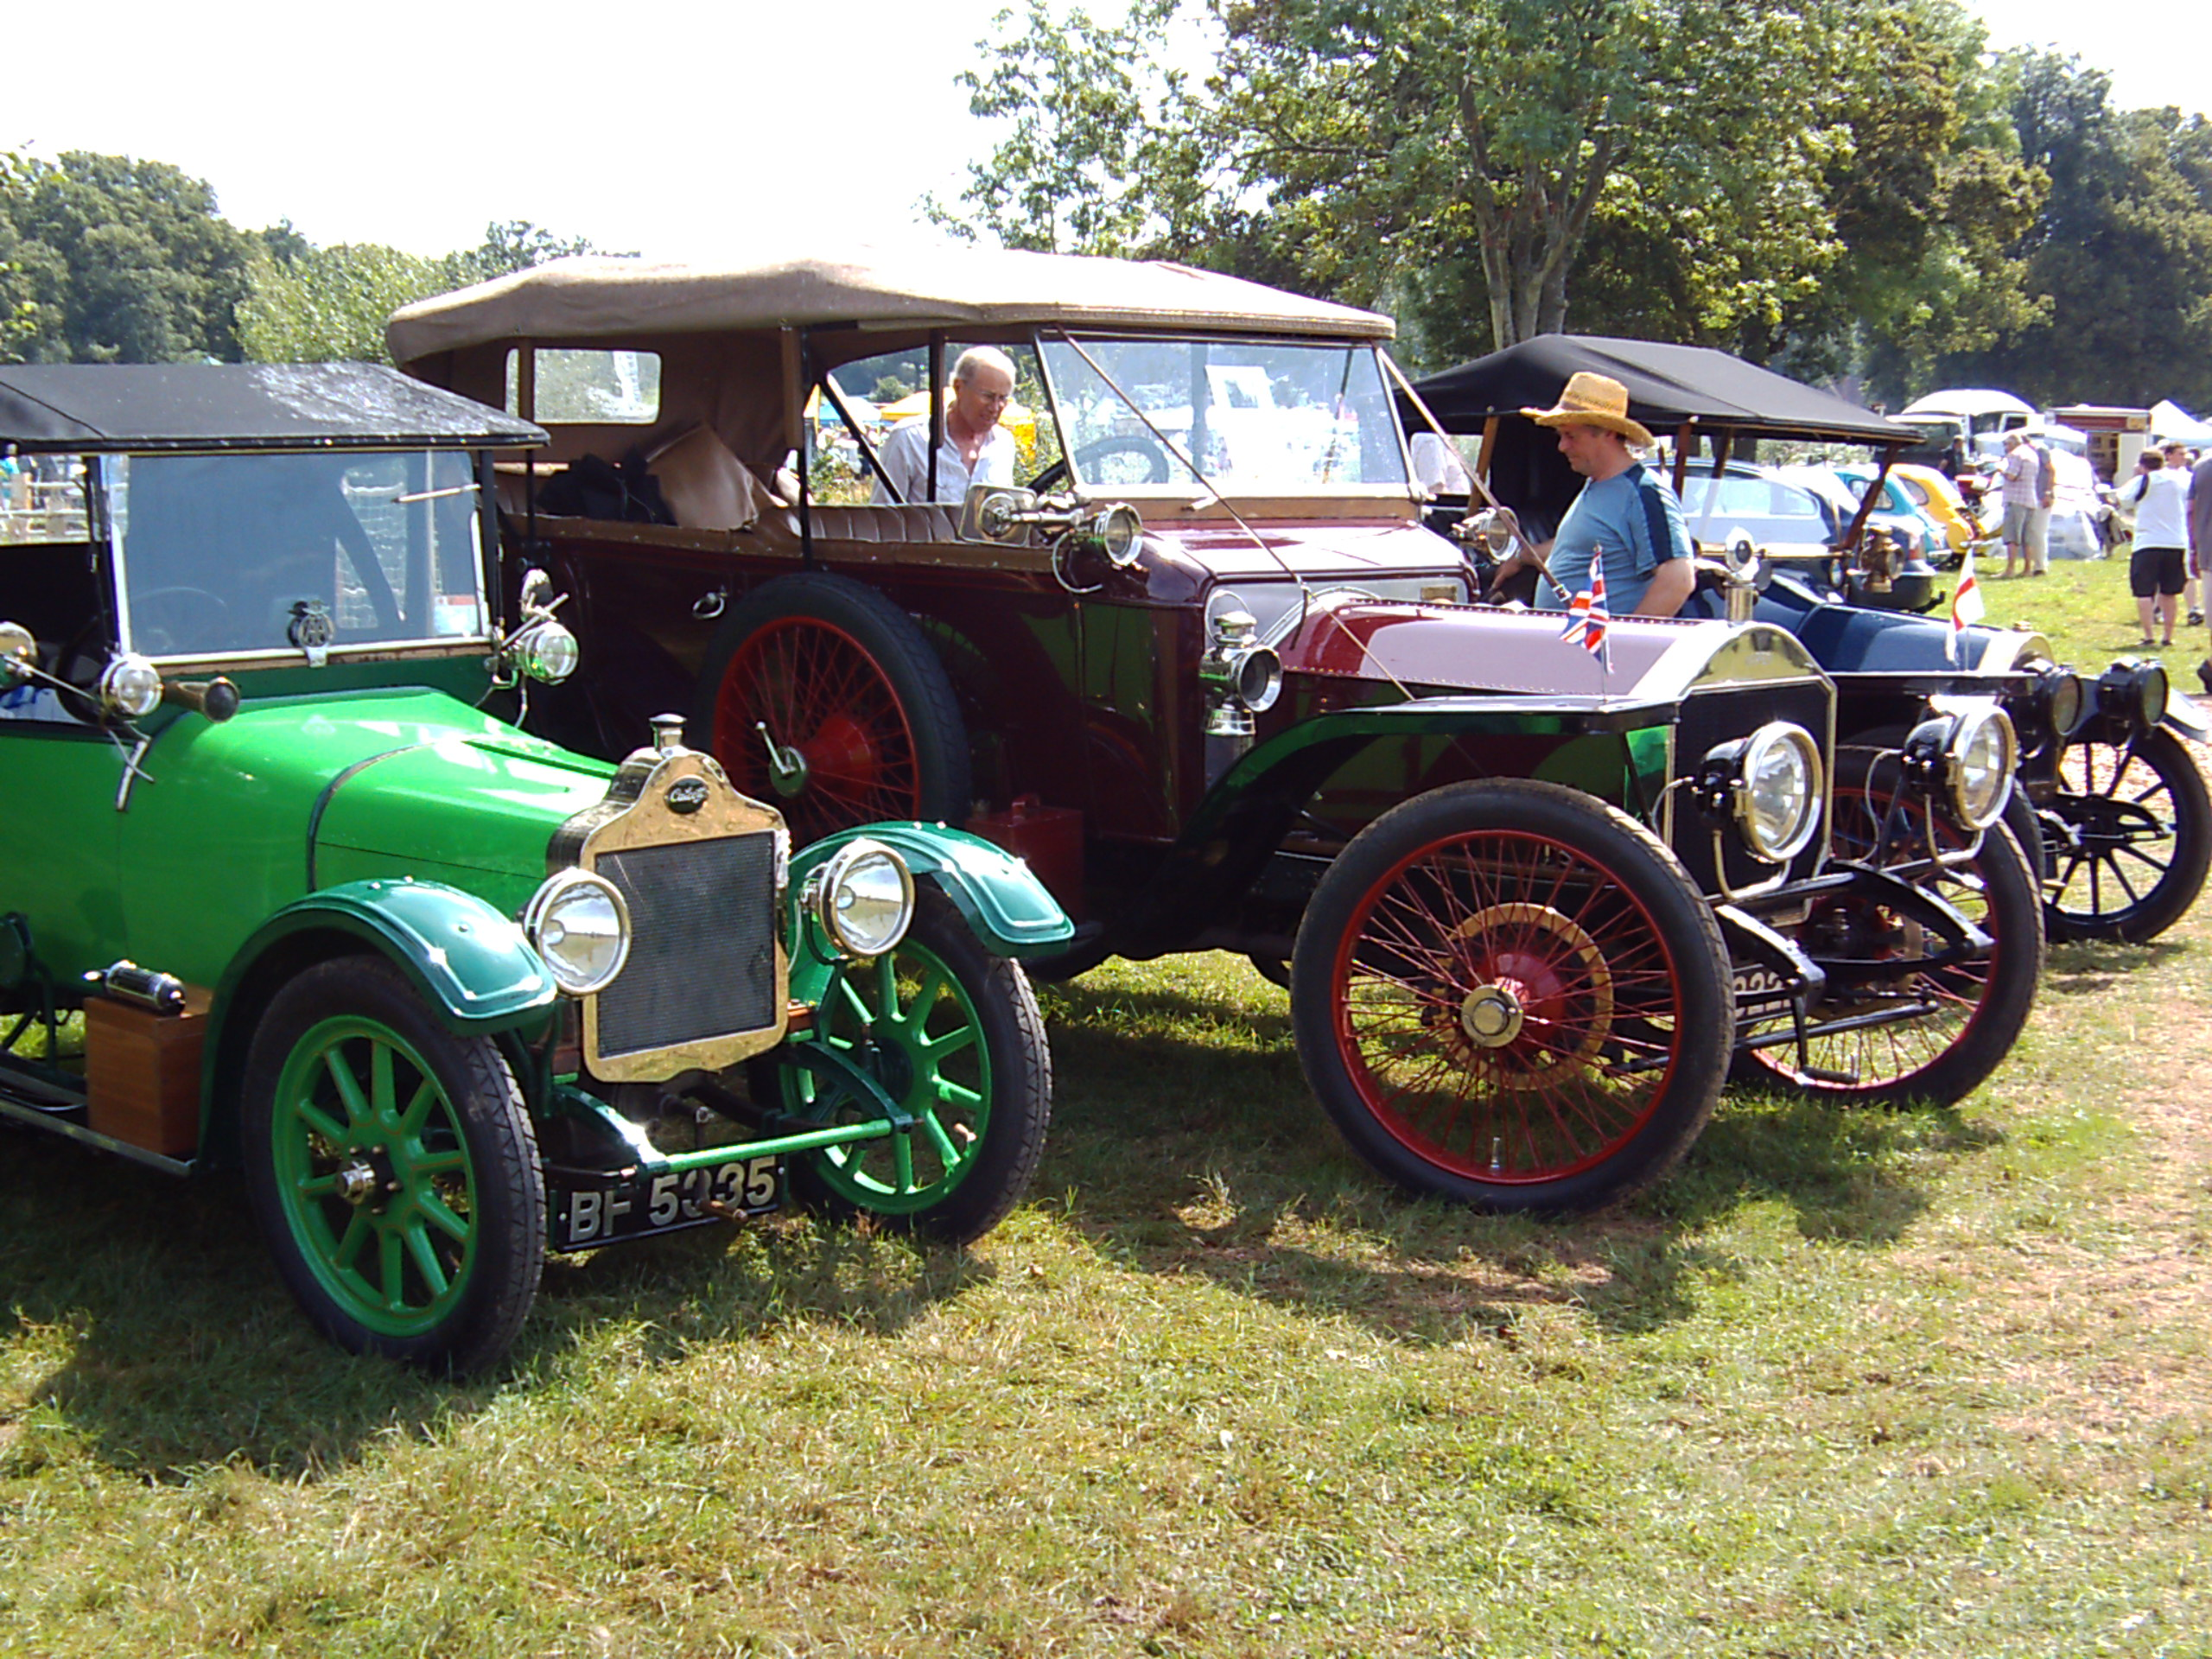 Vintage Cars at Cranleigh